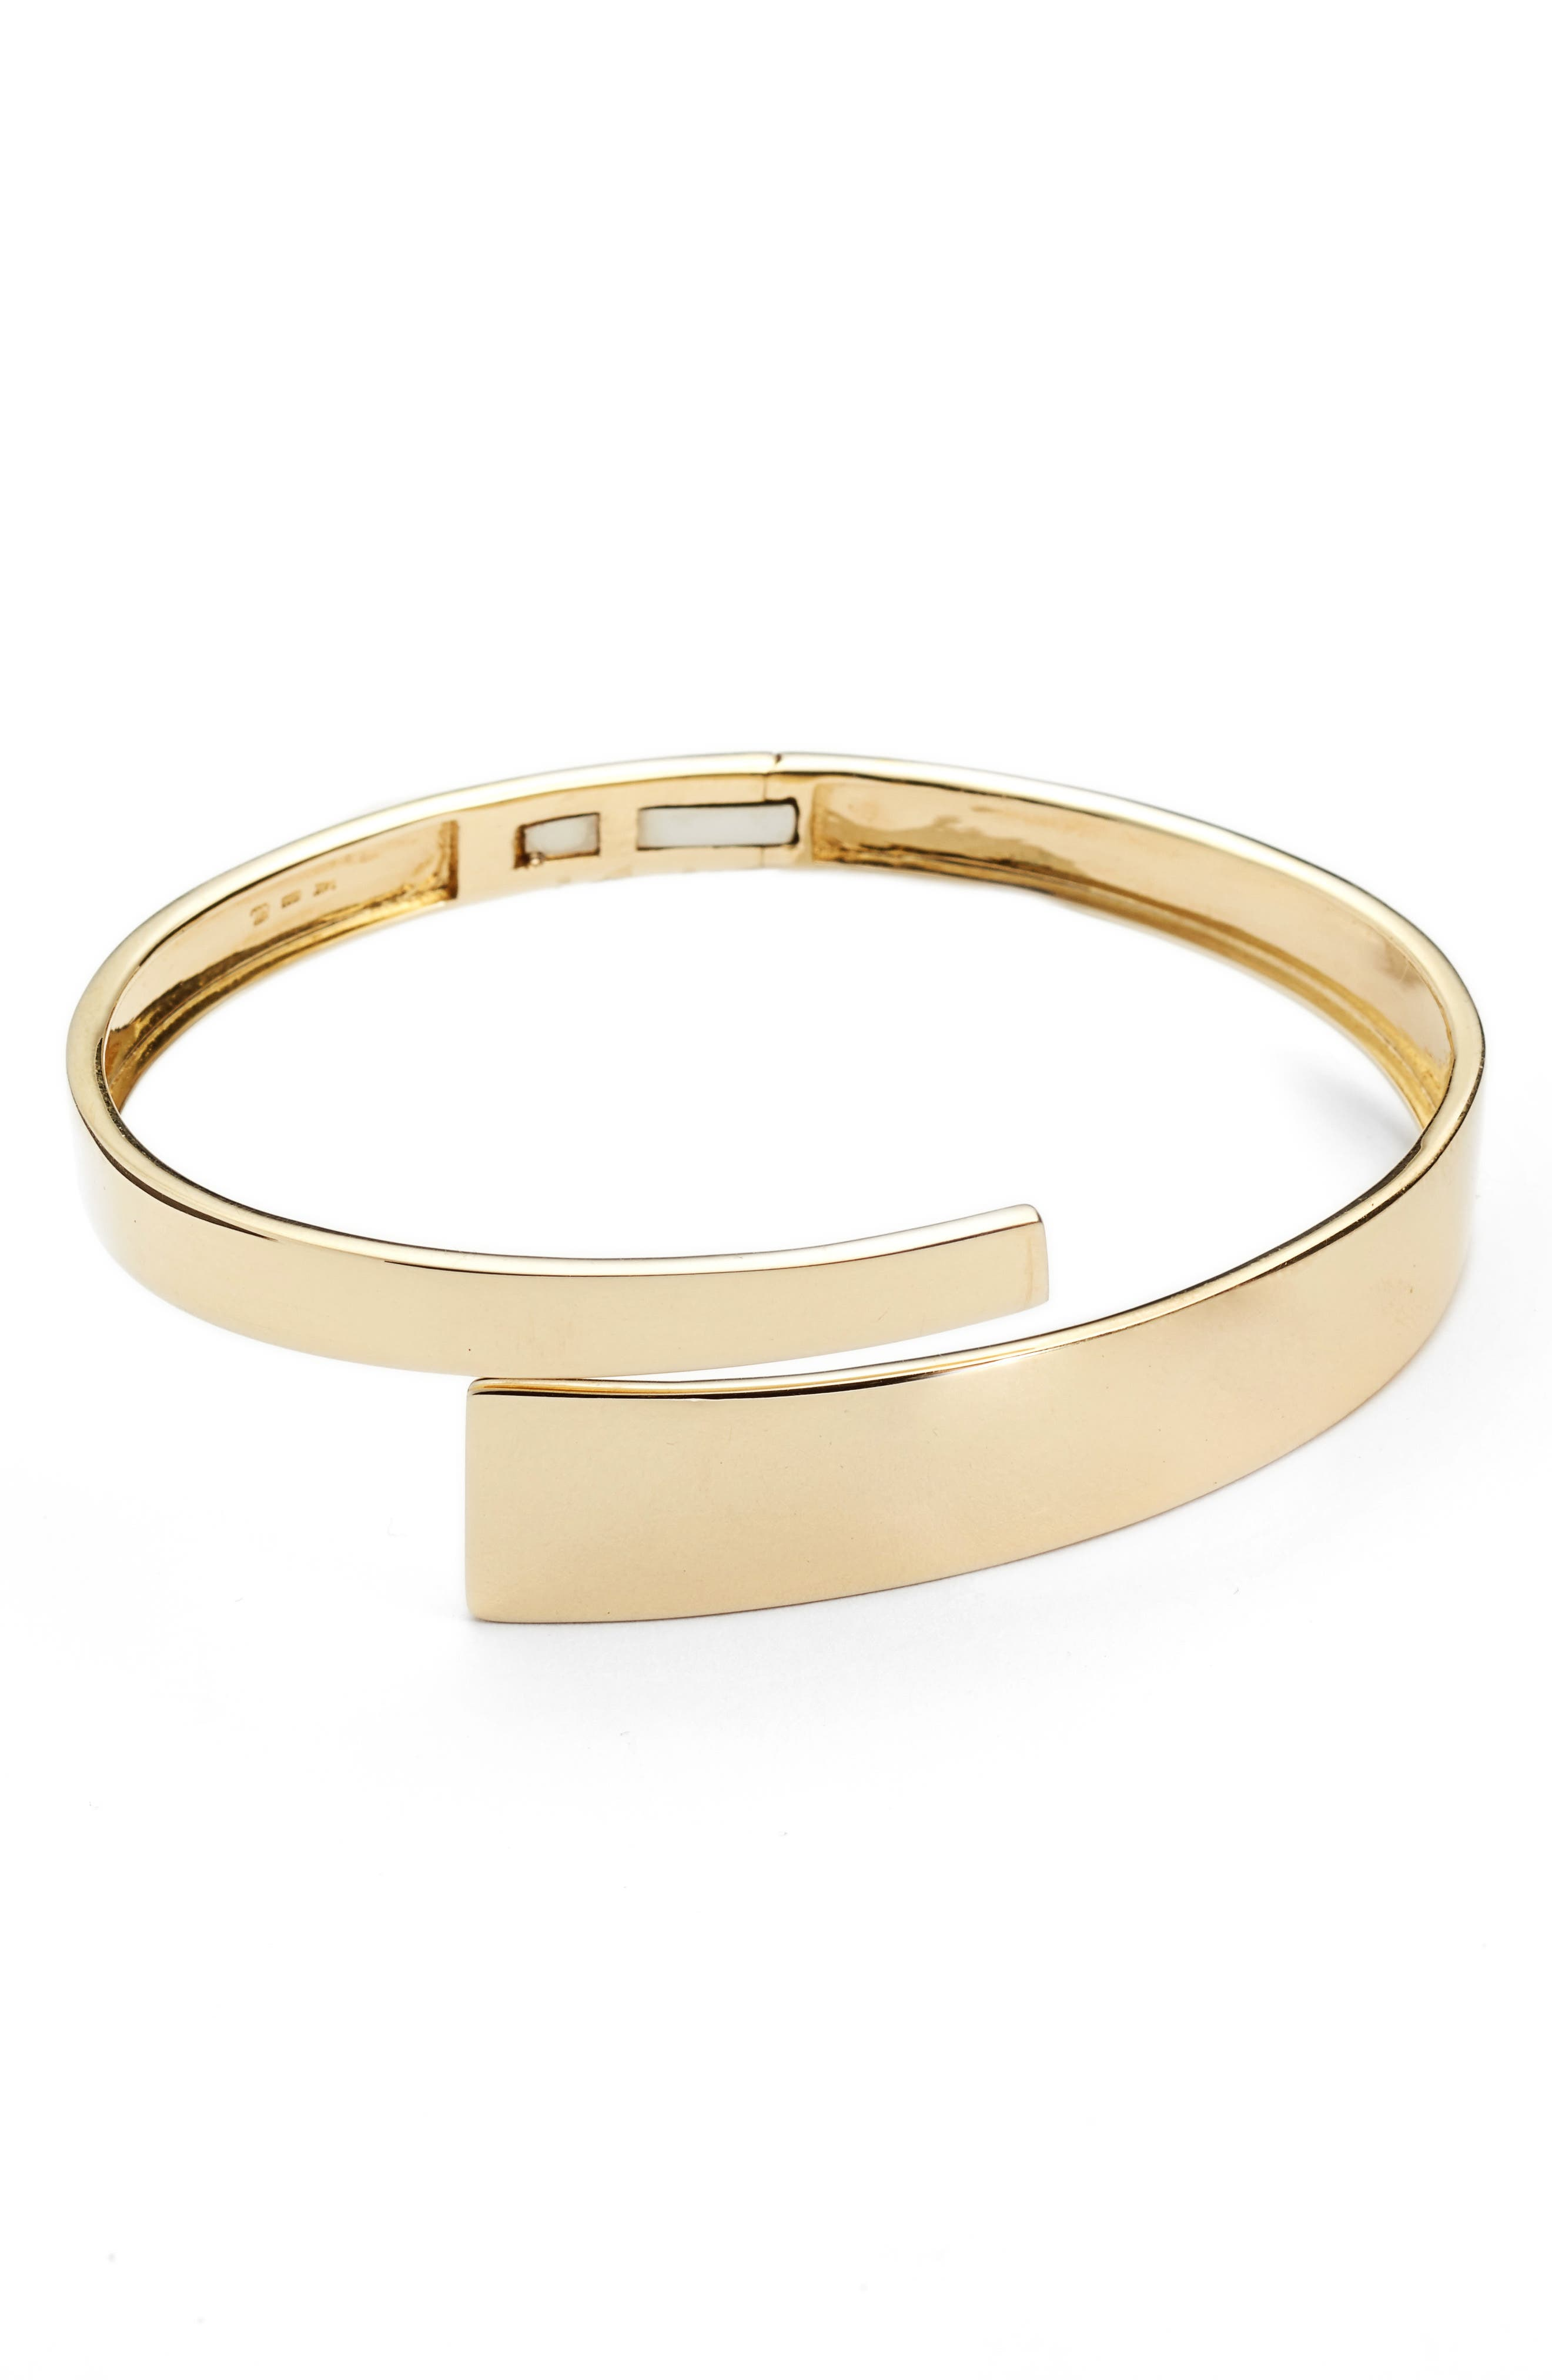 Ofira Open Wrap Bangle,                         Main,                         color, YELLOW GOLD